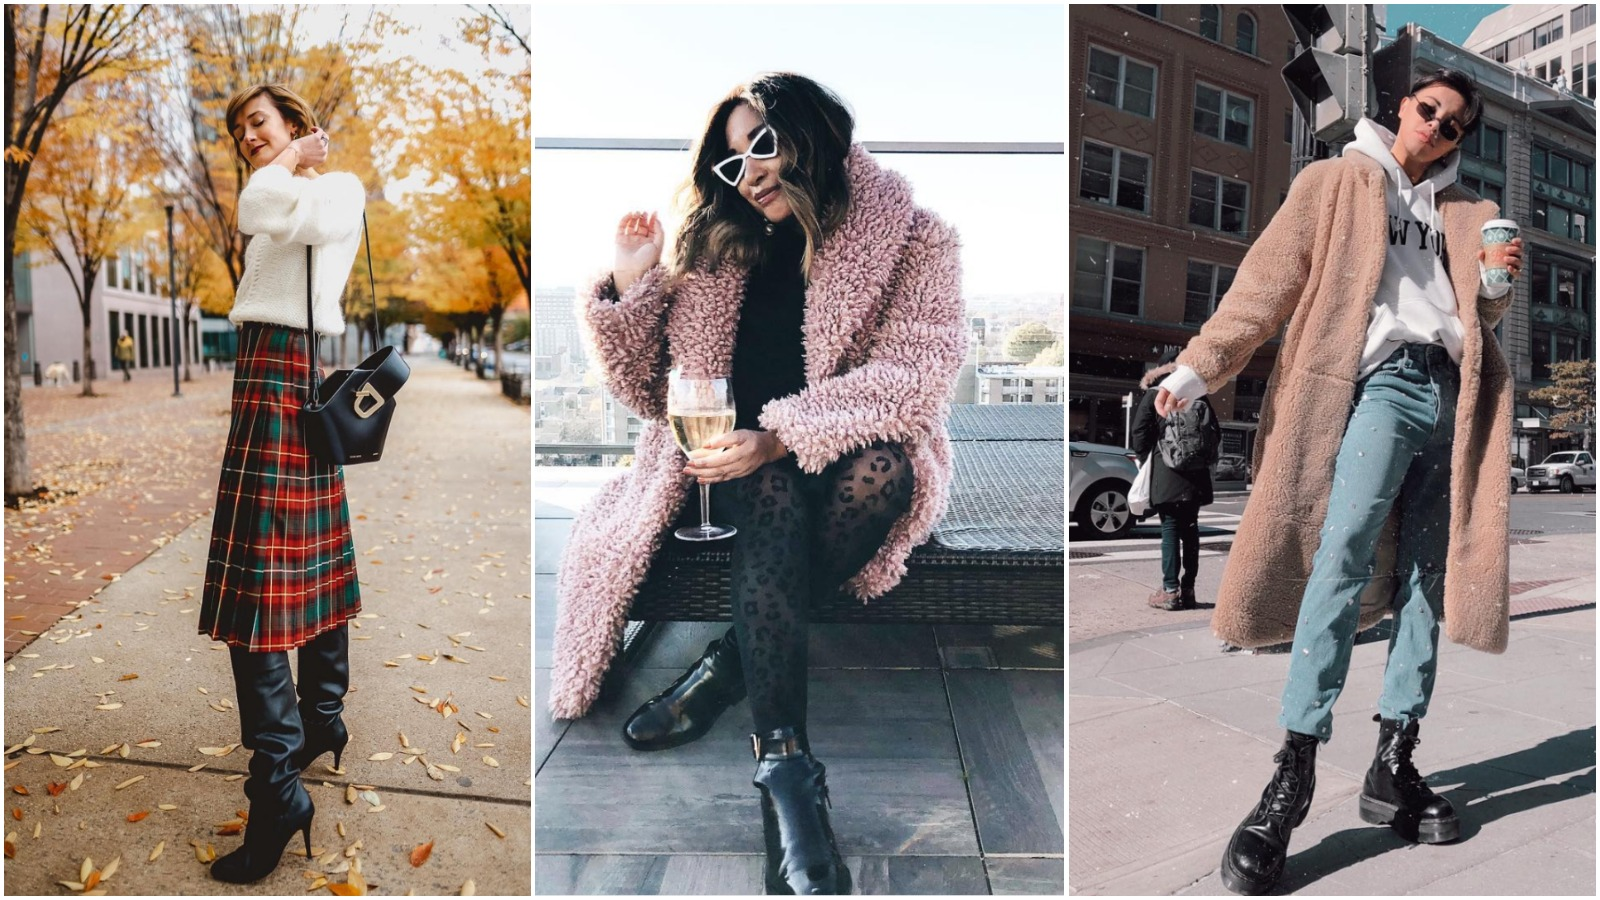 The forecast this winter is calling for miserably cold weeks and plenty of snow, but there's plenty of fashion to be found! Whether you're donning your best duds under your parka or braving the cold for fashion's sake, here is how 18 local fashion bloggers are looking good even as the temperatures drop.{ }